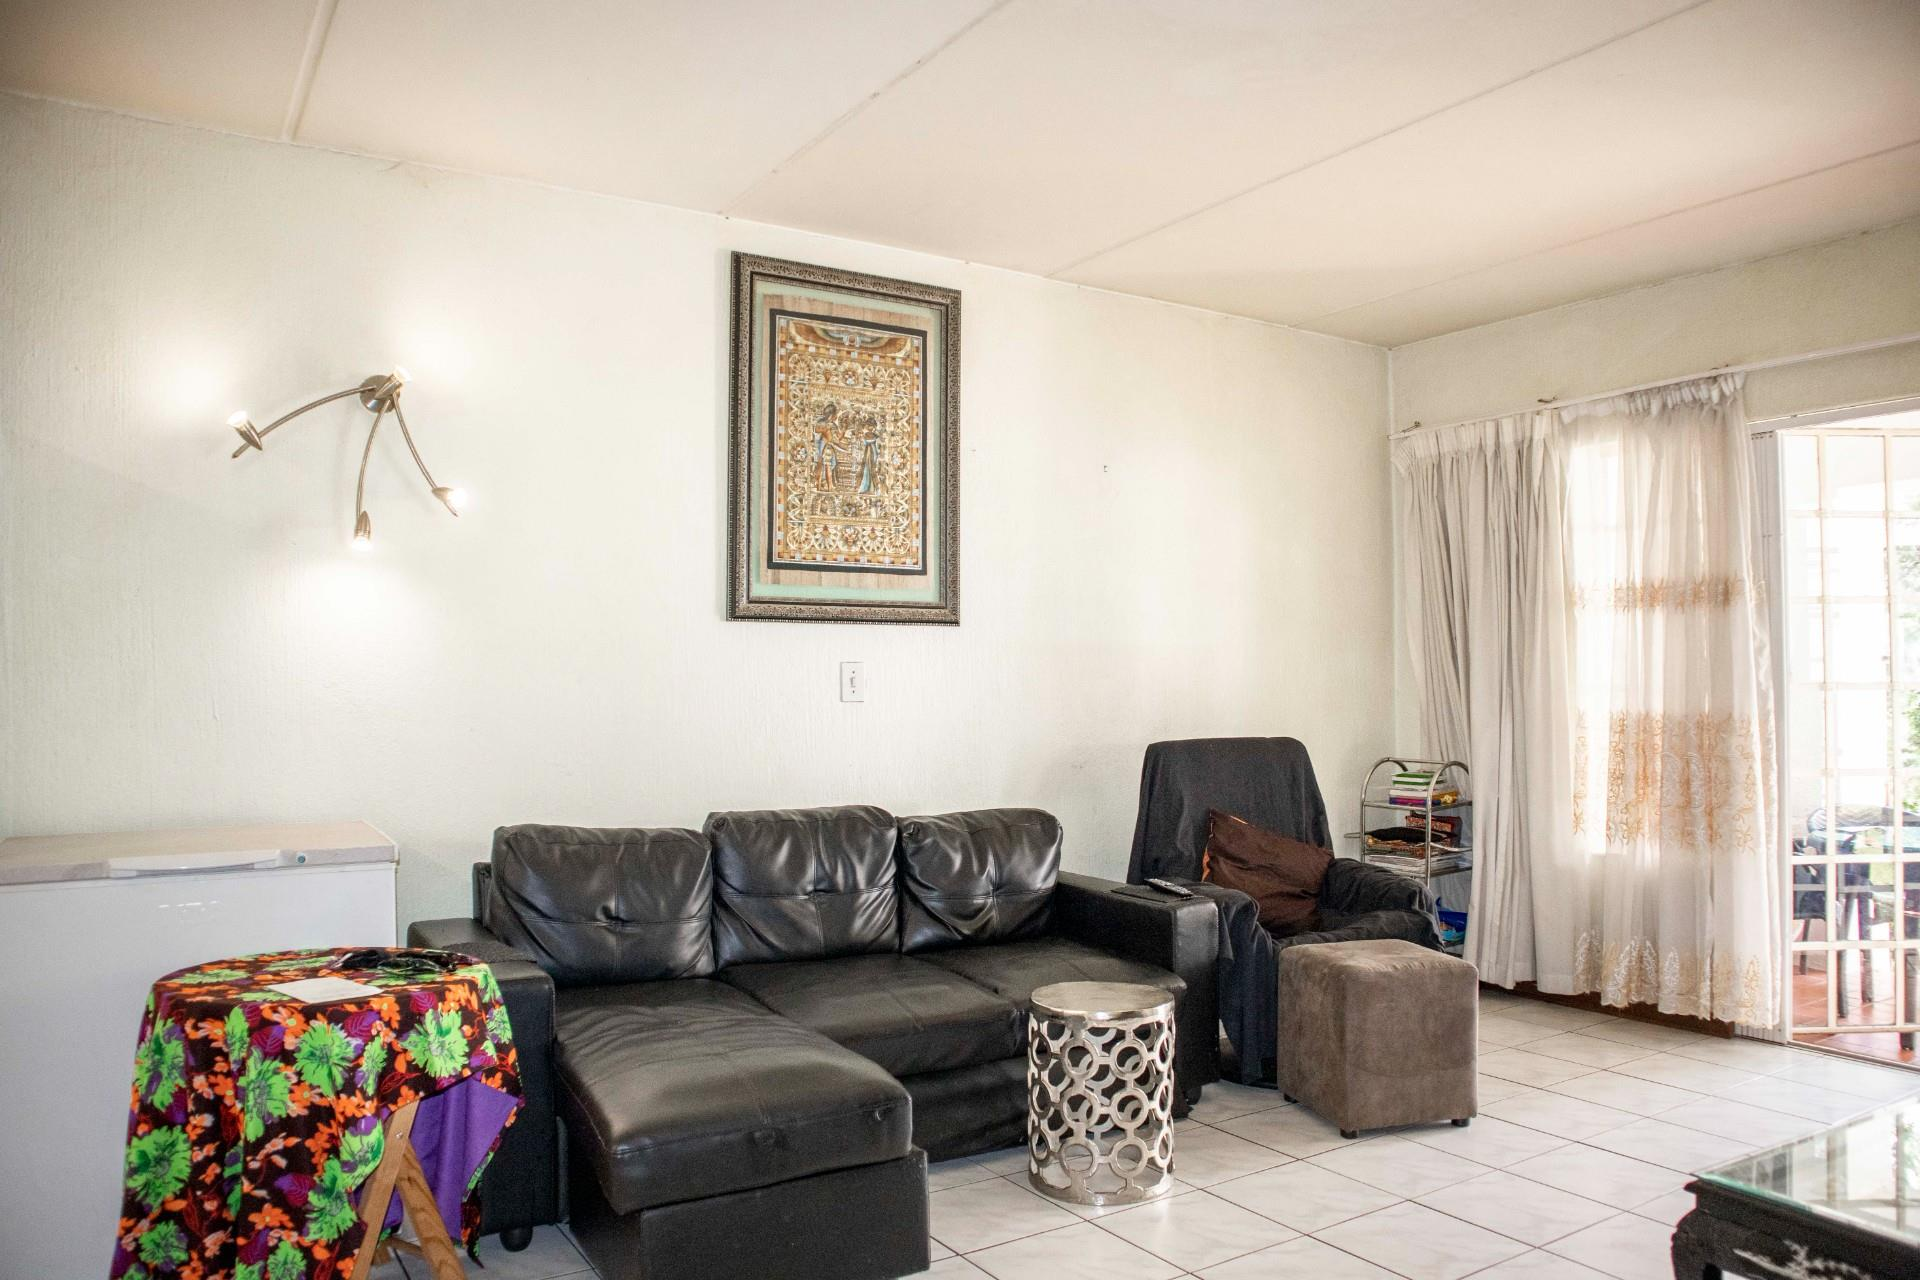 2 Bedroom Apartment / Flat For Sale in Kelland